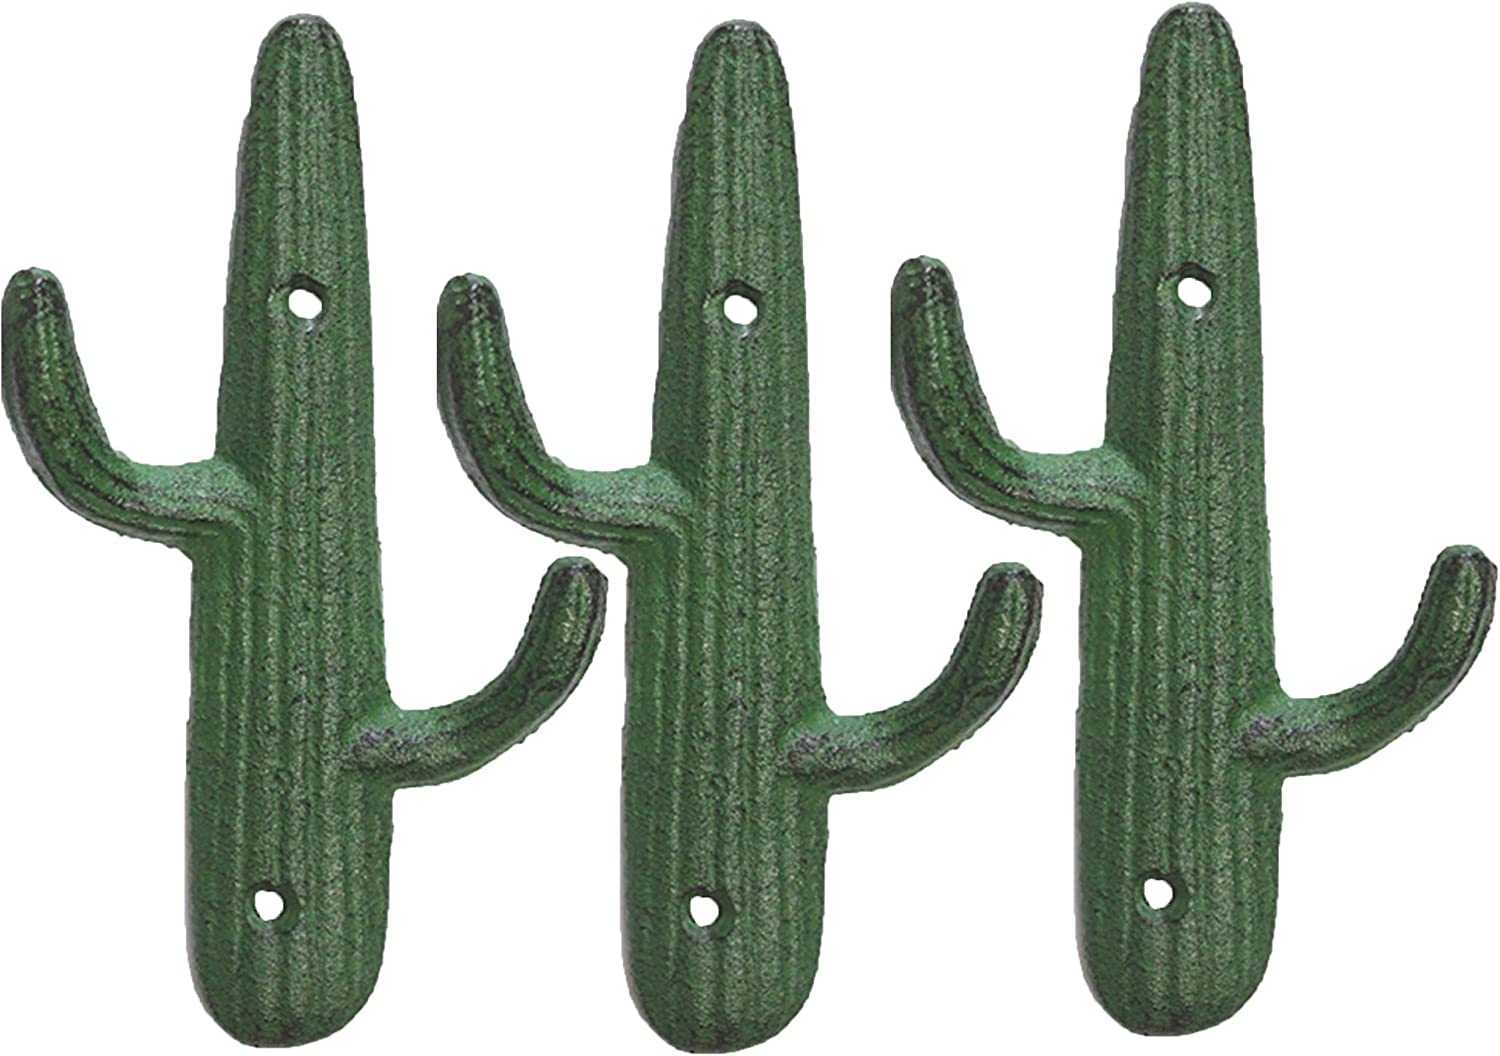 Set of 3 - Cast Iron Cactus Double Wall Hooks/Hangers - Decorative Wall Mounted Hooks for Coats, Bags, Towels and More - w/Screws and Anchors Included - Rustic Green Color